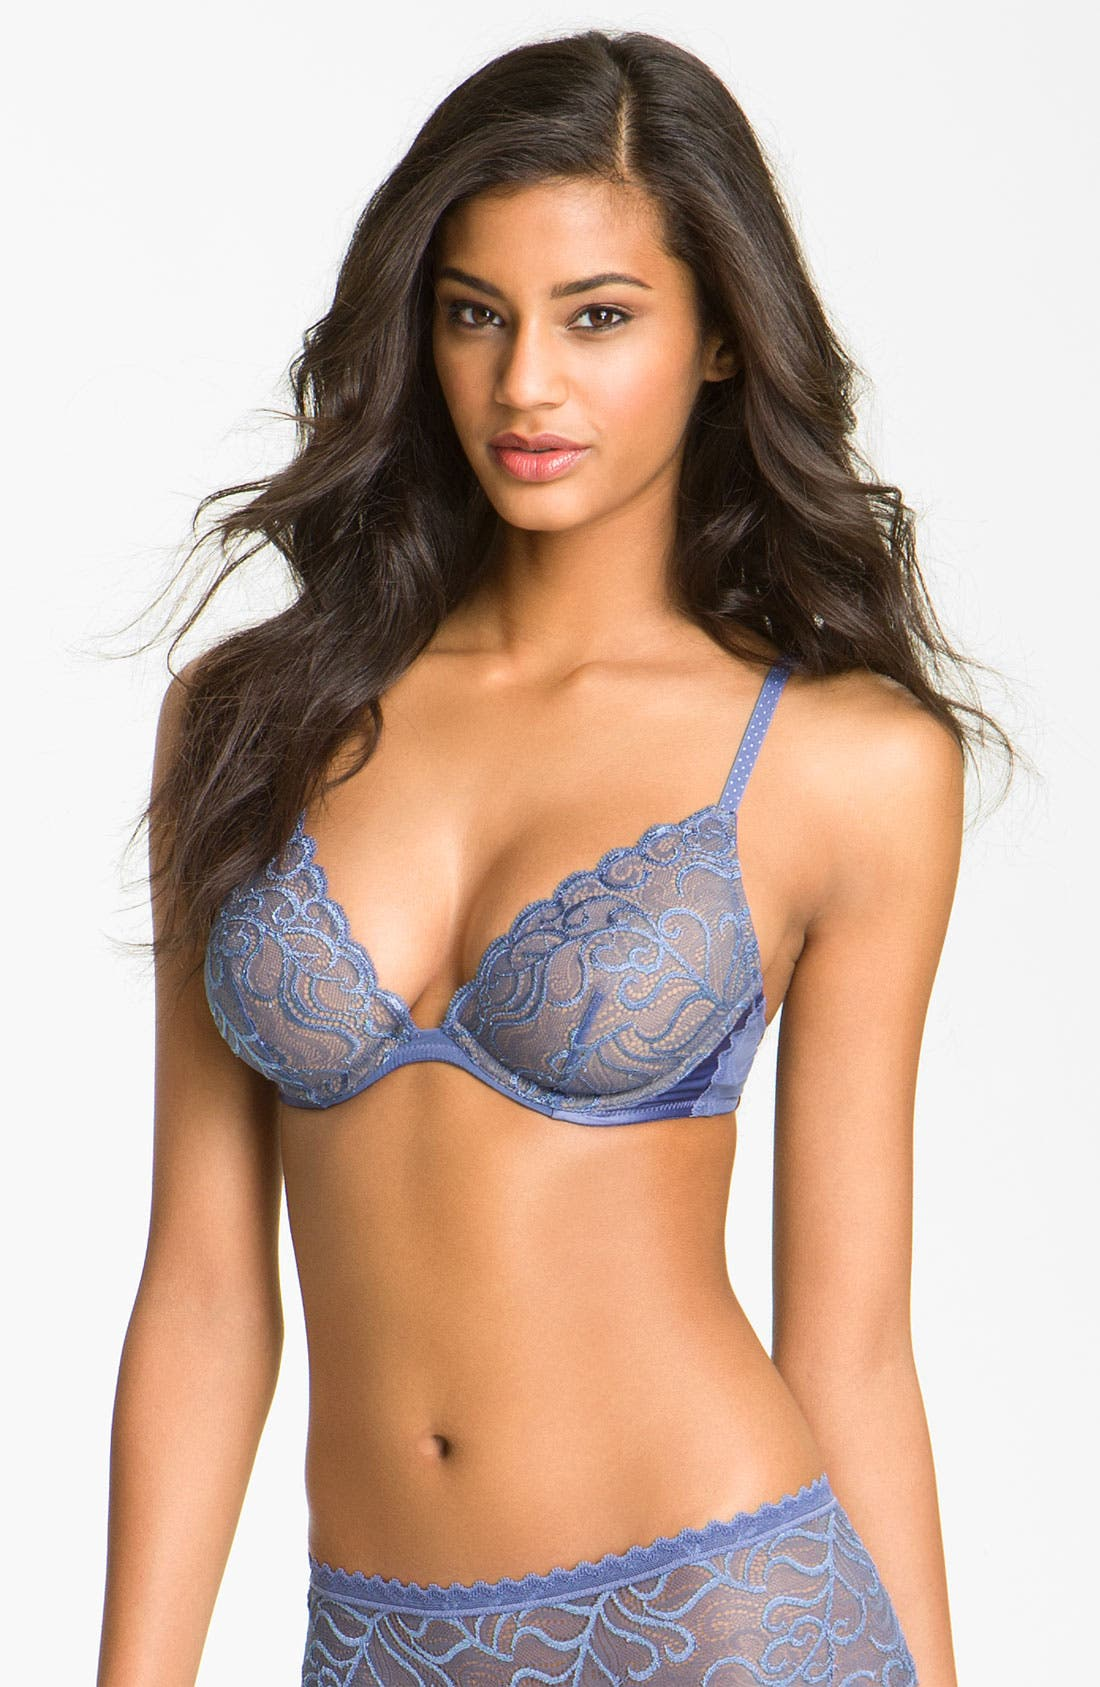 Main Image - Miss Studio by La Perla 'Shining Night' Underwire Bra